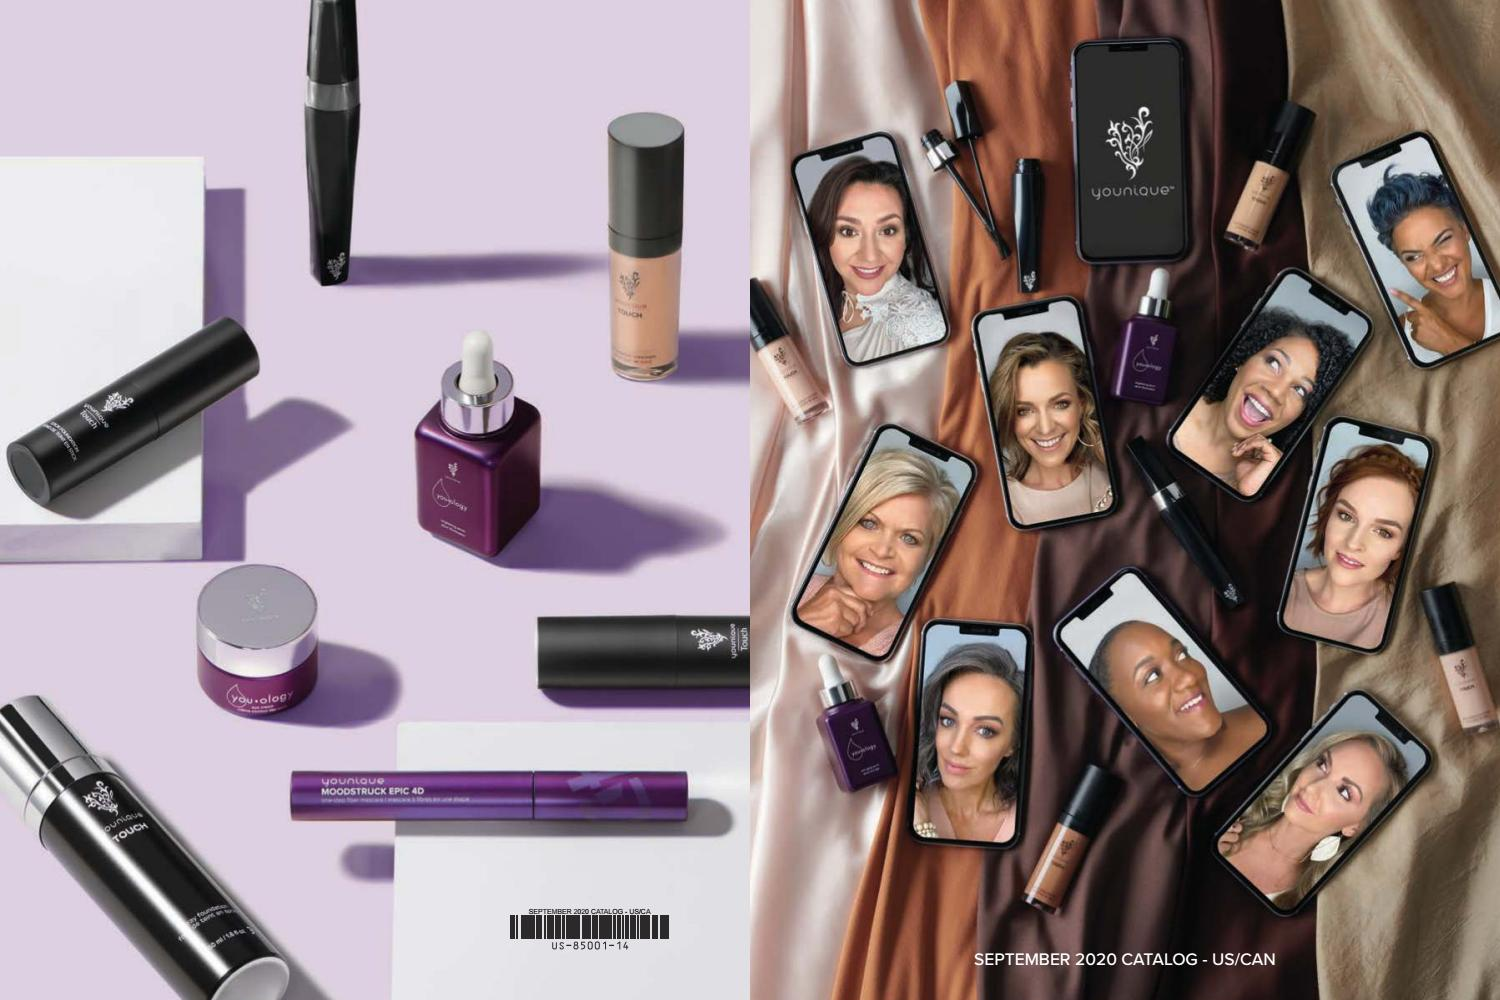 Younique Catalog By Silvia Vilchis Issuu